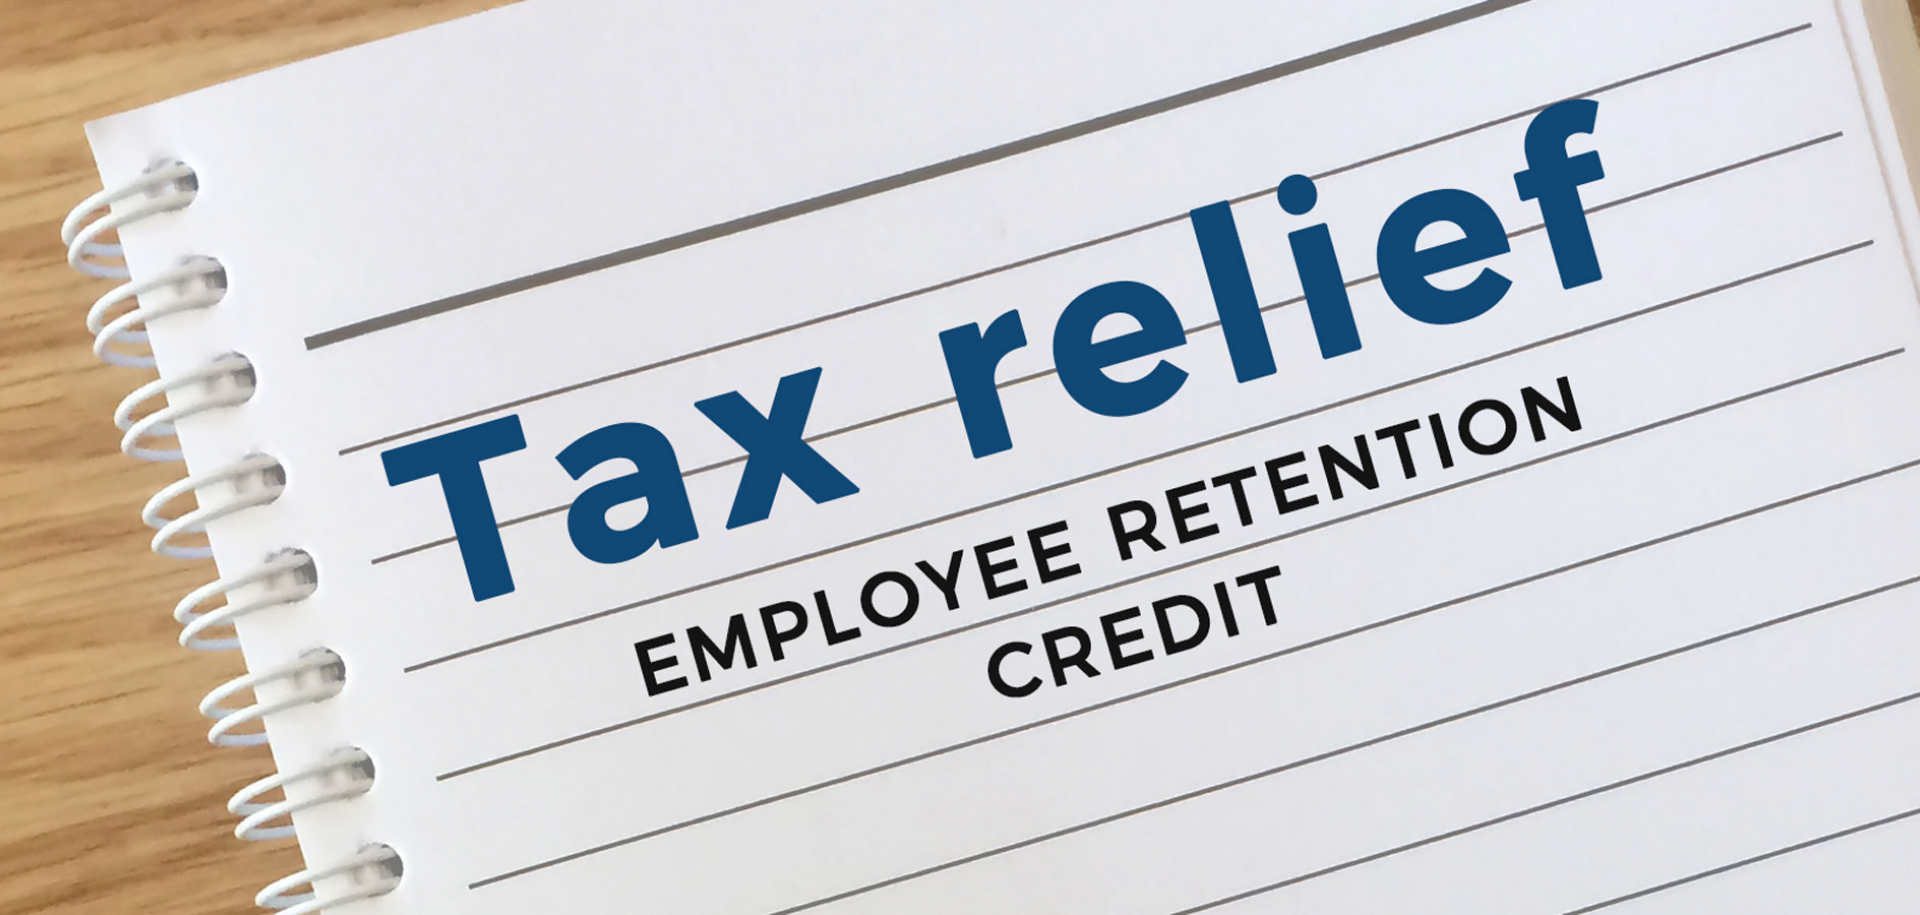 employee retention credit